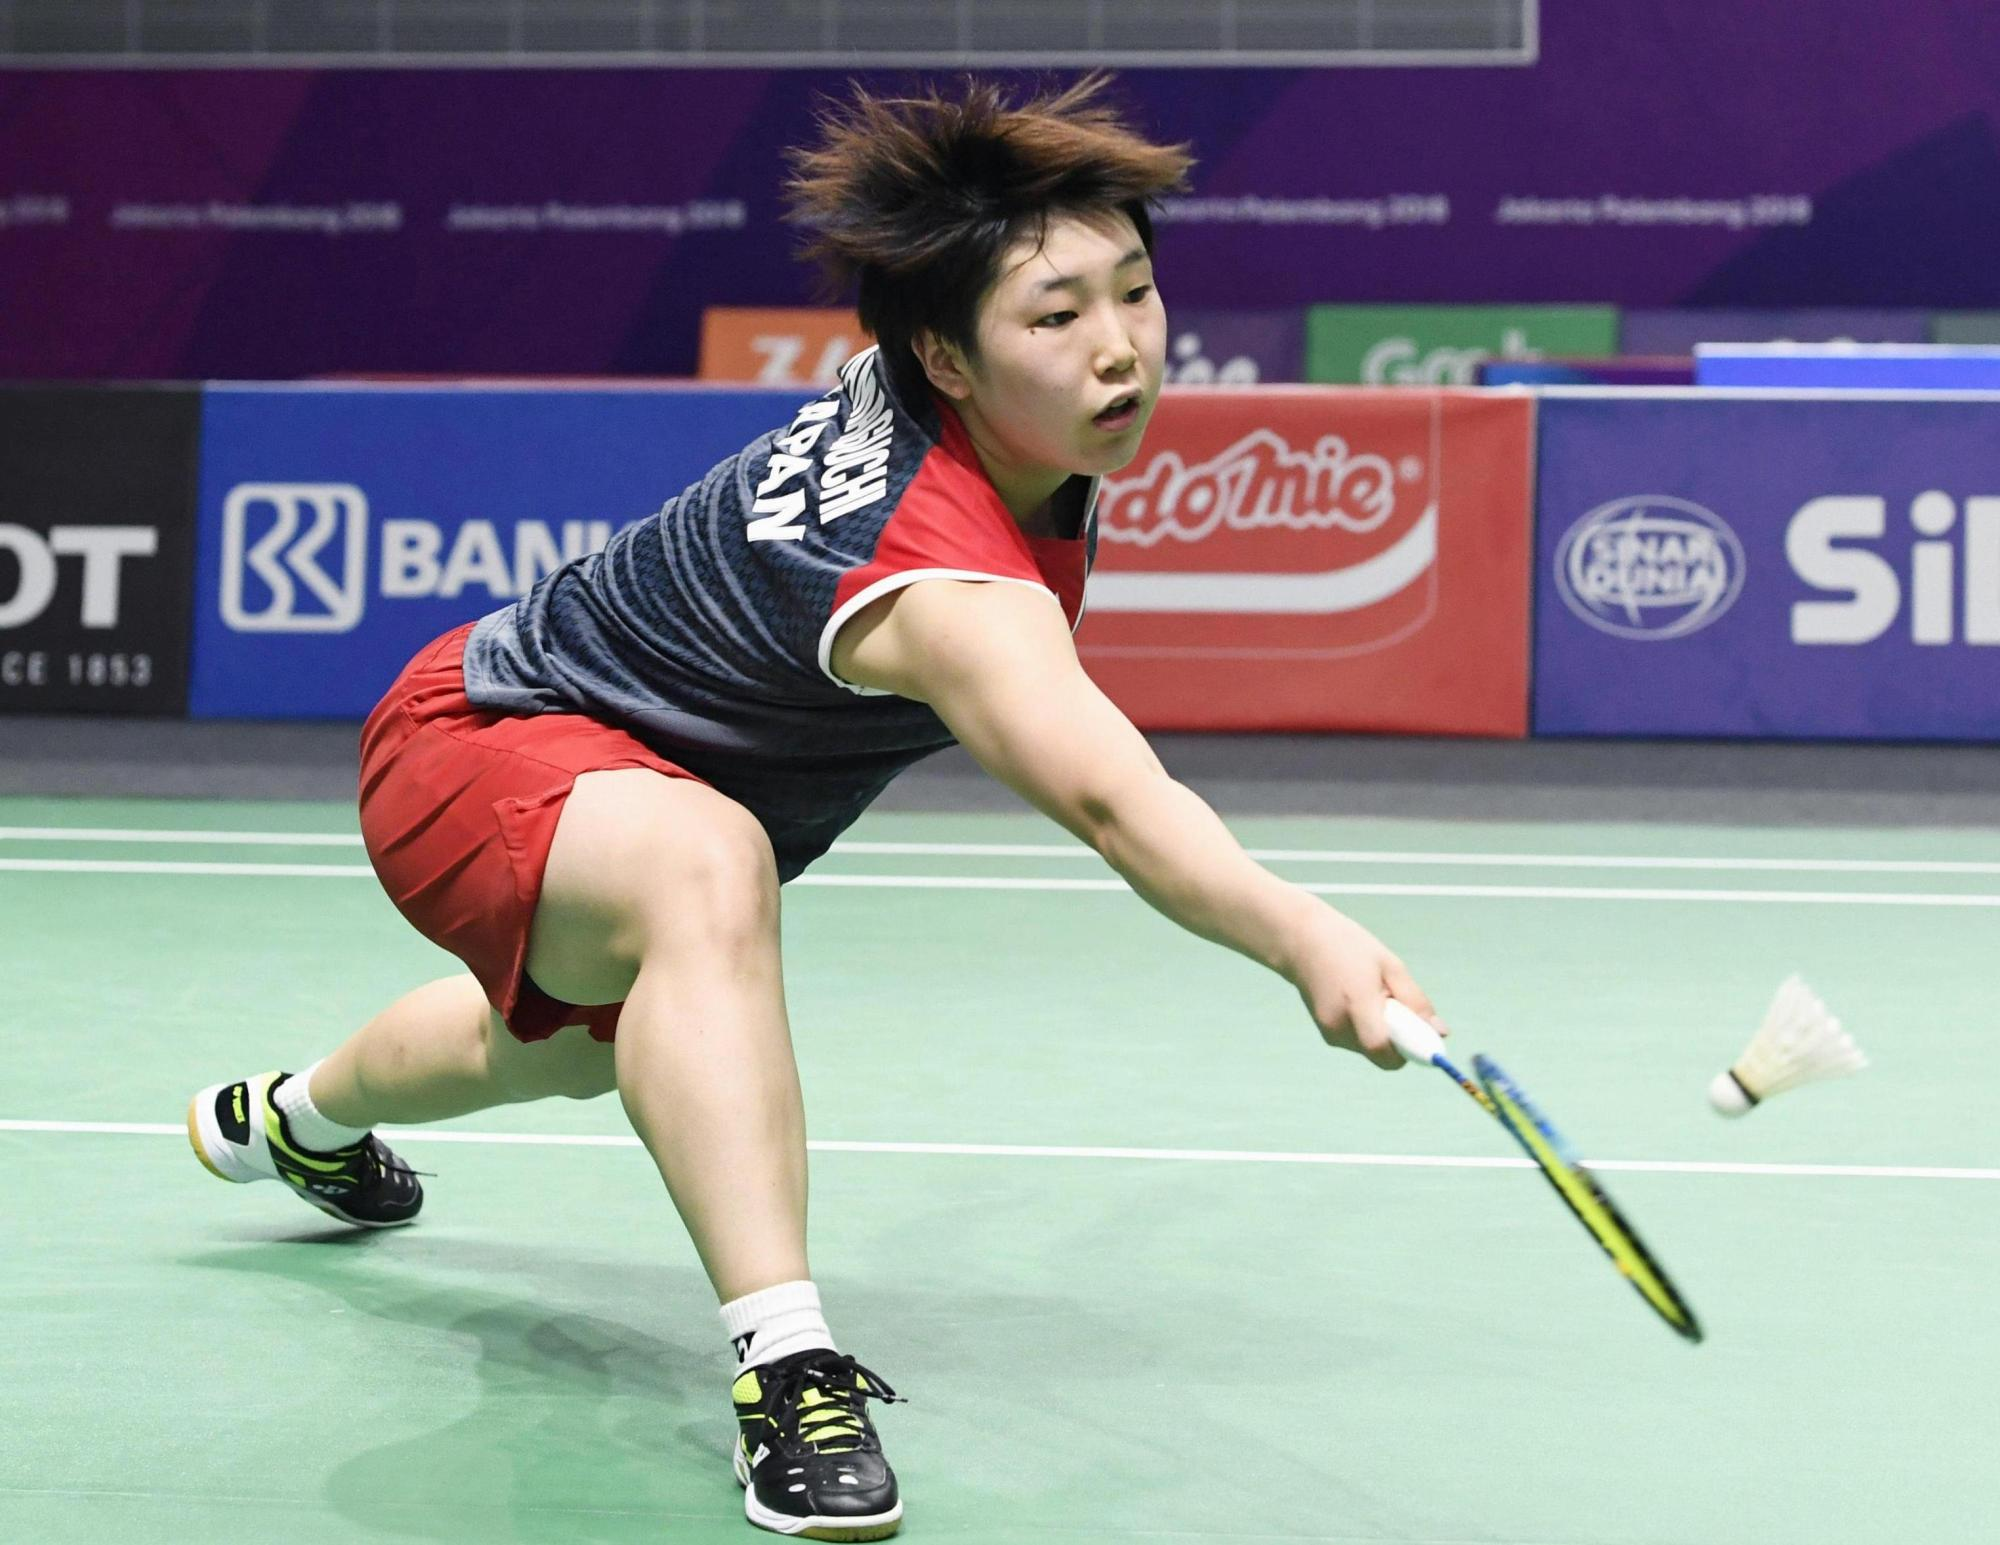 Akane Yamaguchi hits the shuttlecock in the first game of her match against Indonesia's Gregoria Mariska Tunjung in the women's team semifinal on Tuesday in Jakarta. Yamaguchi lost 21-16, 9-21, 21-18, but Japan advanced to the final. | KYODO